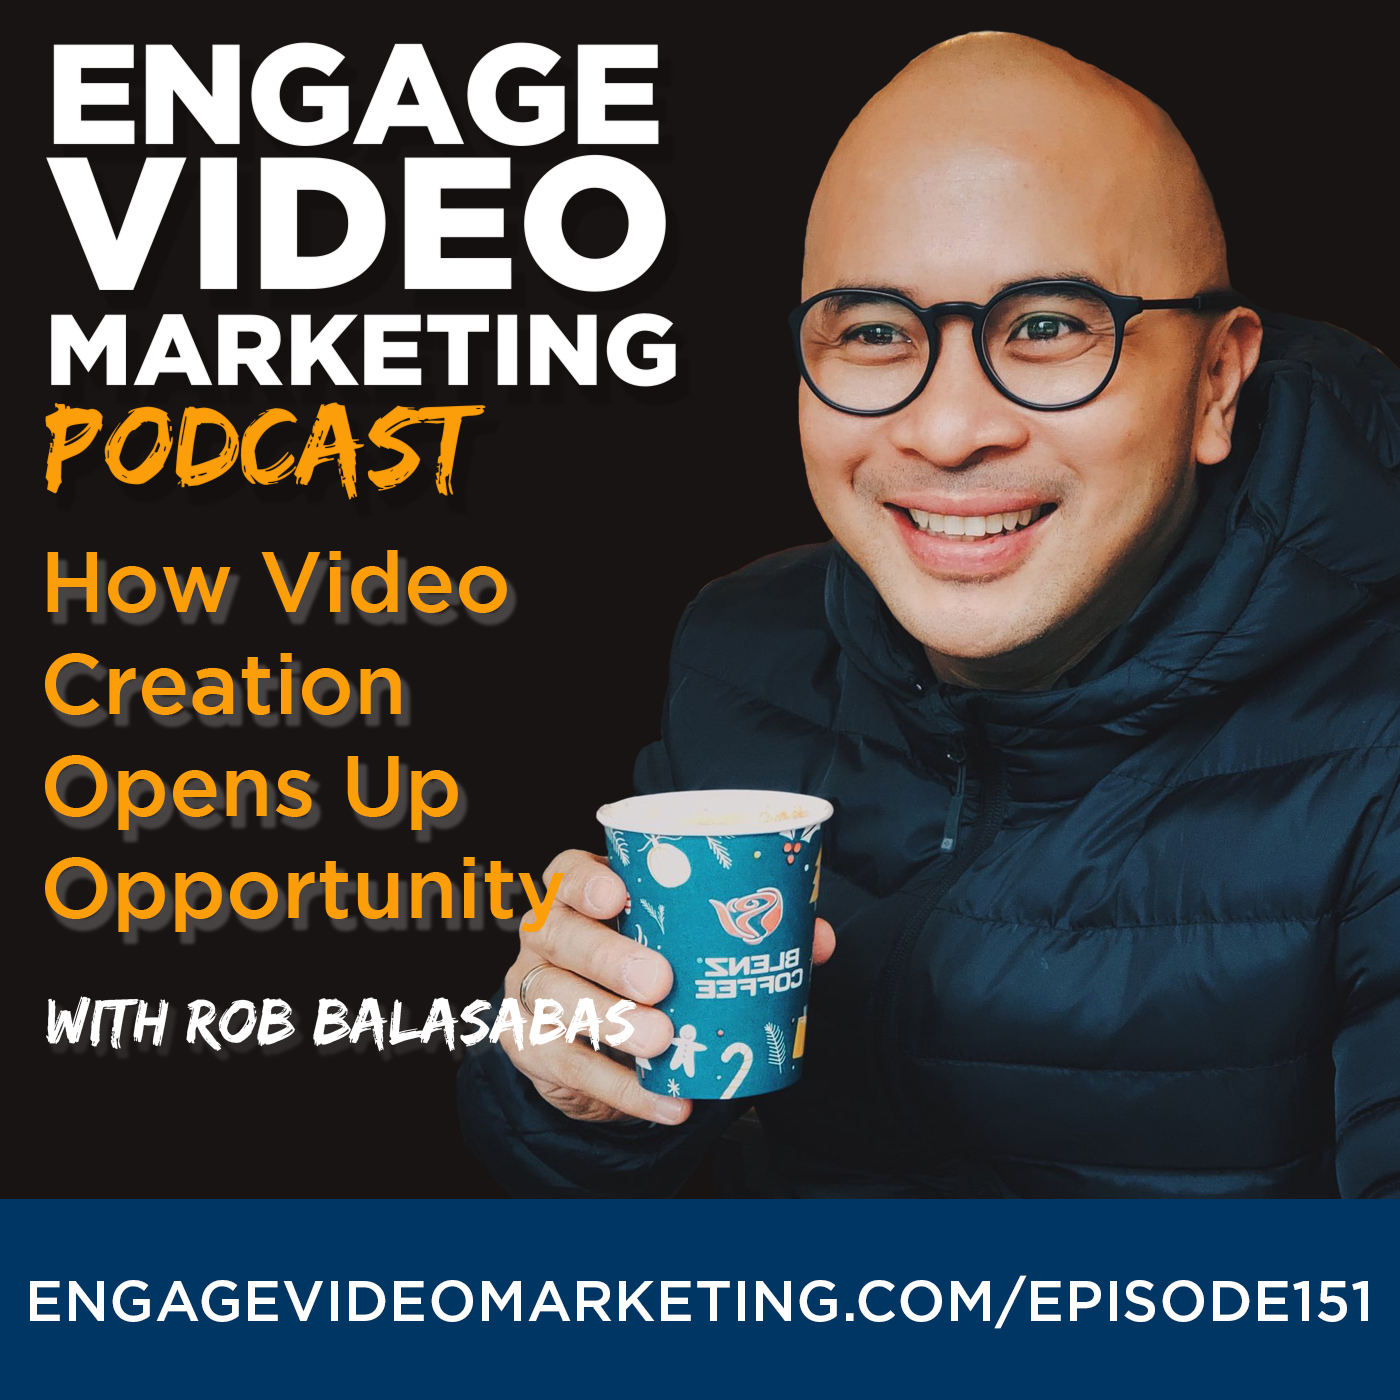 How Video Creation Opens Up Opportunity with Rob Balasabas